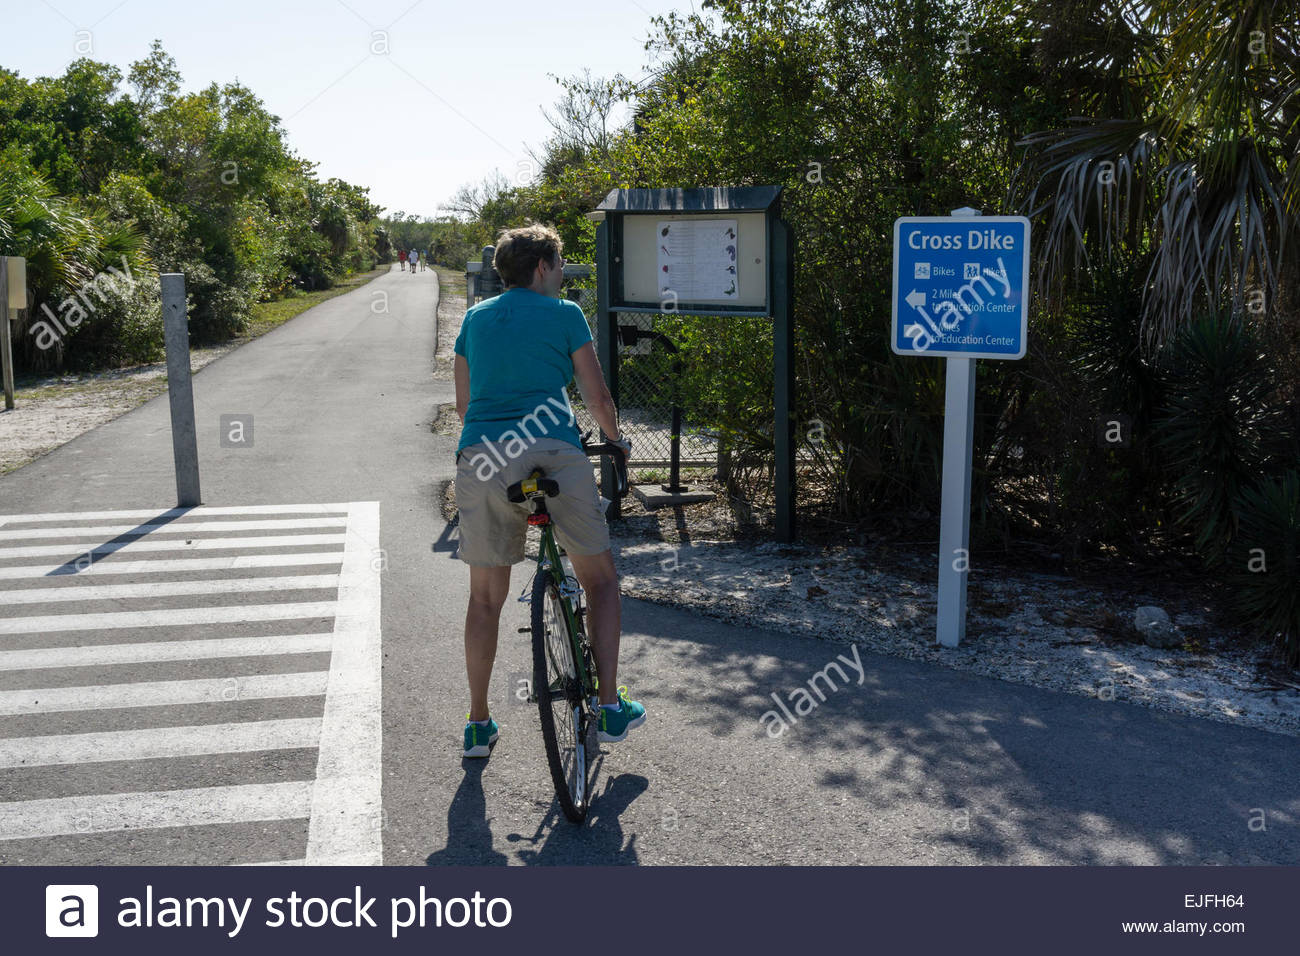 A woman cyclist pauses at a path along Wildlife Drive at Ding Darling wildlife refuge on Sanibel Island, Florida - Stock Image